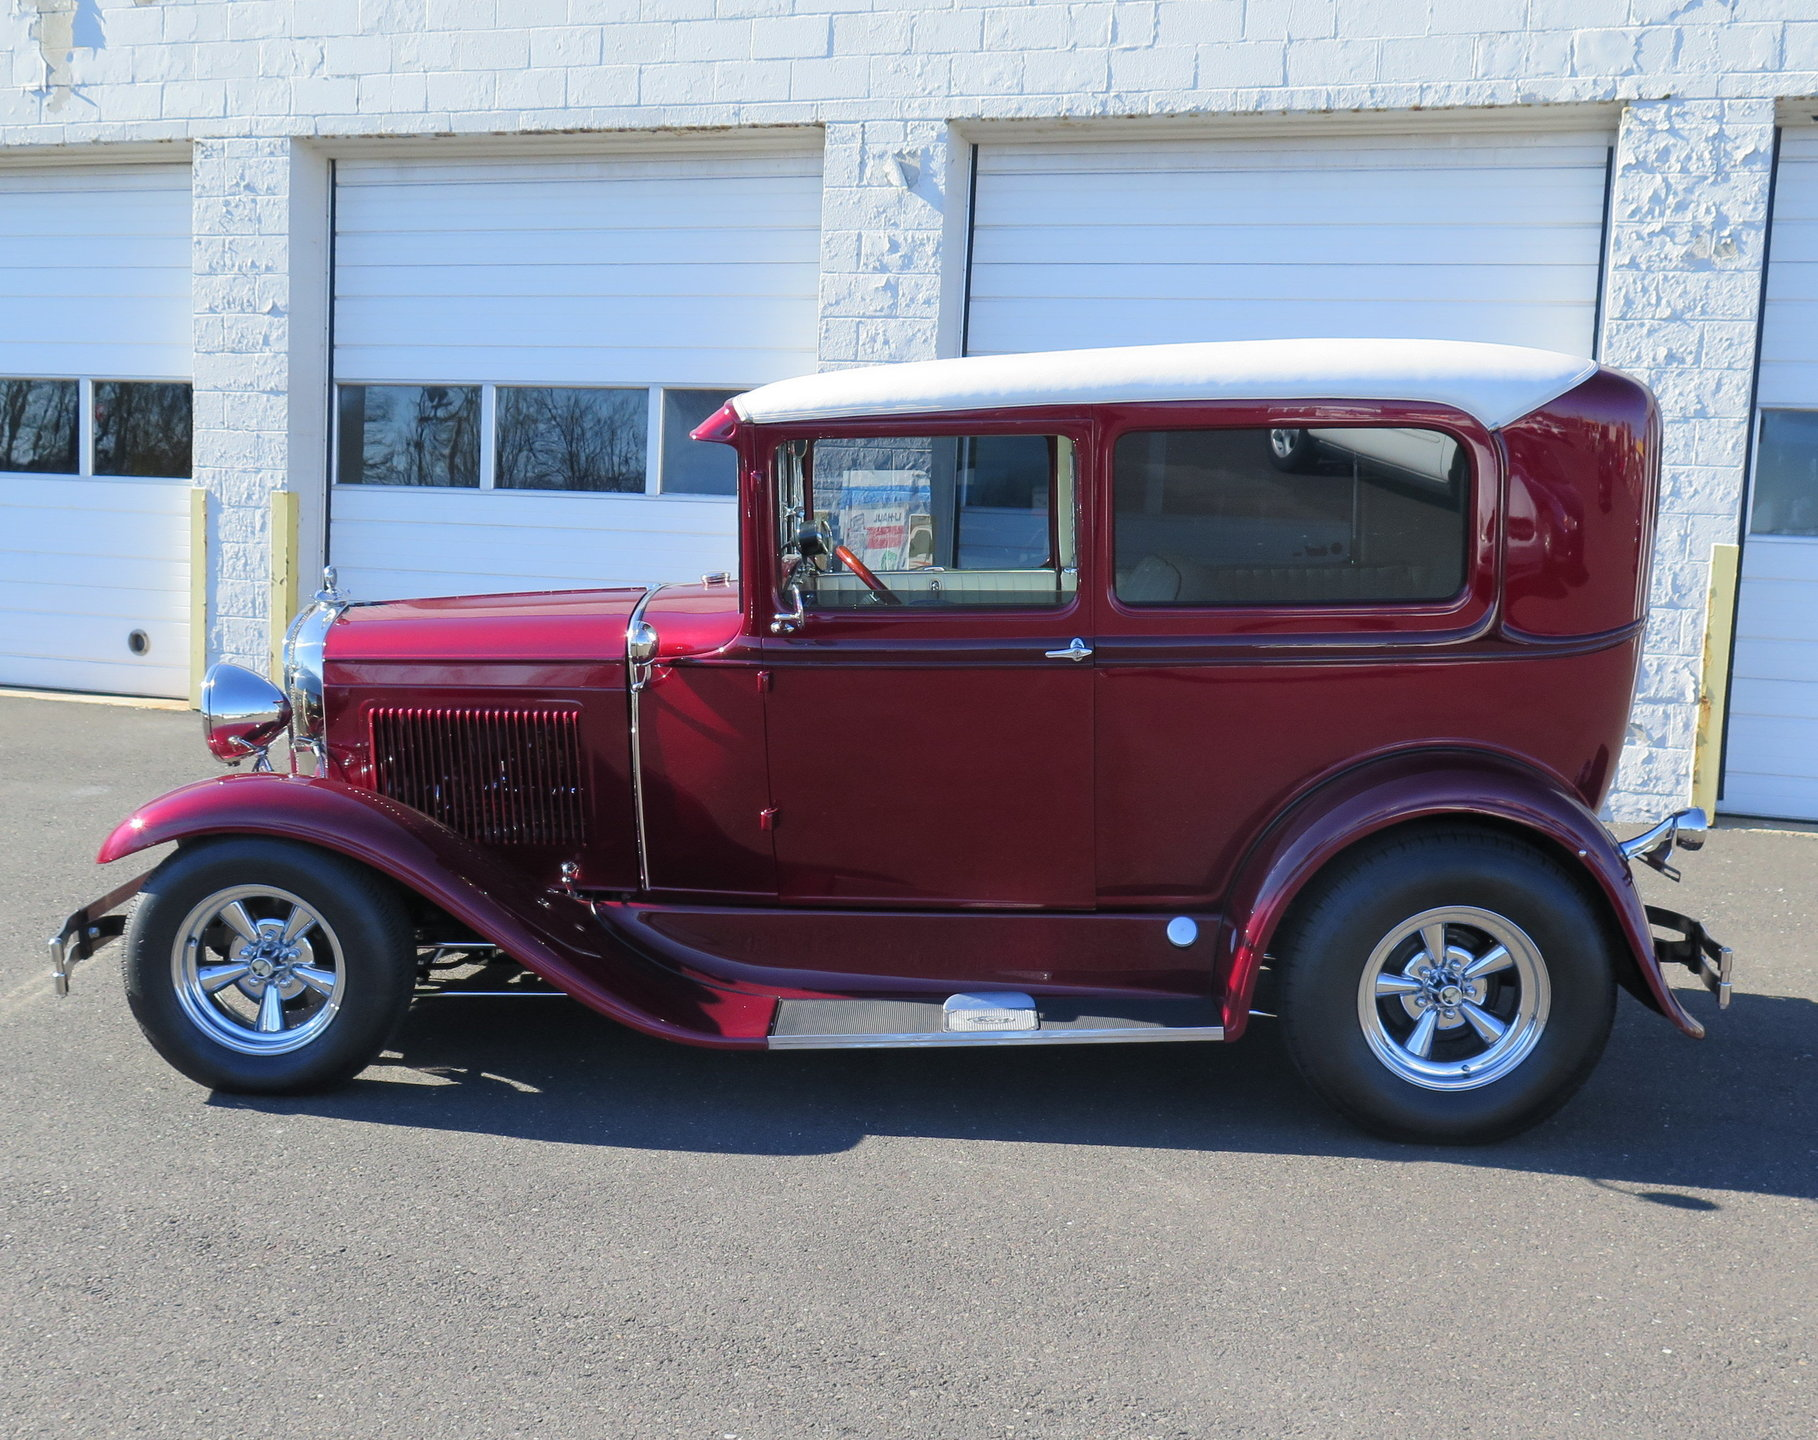 1930 Ford Model A Tudor Hot Rod | OLD FORGE MOTORCARS INC.